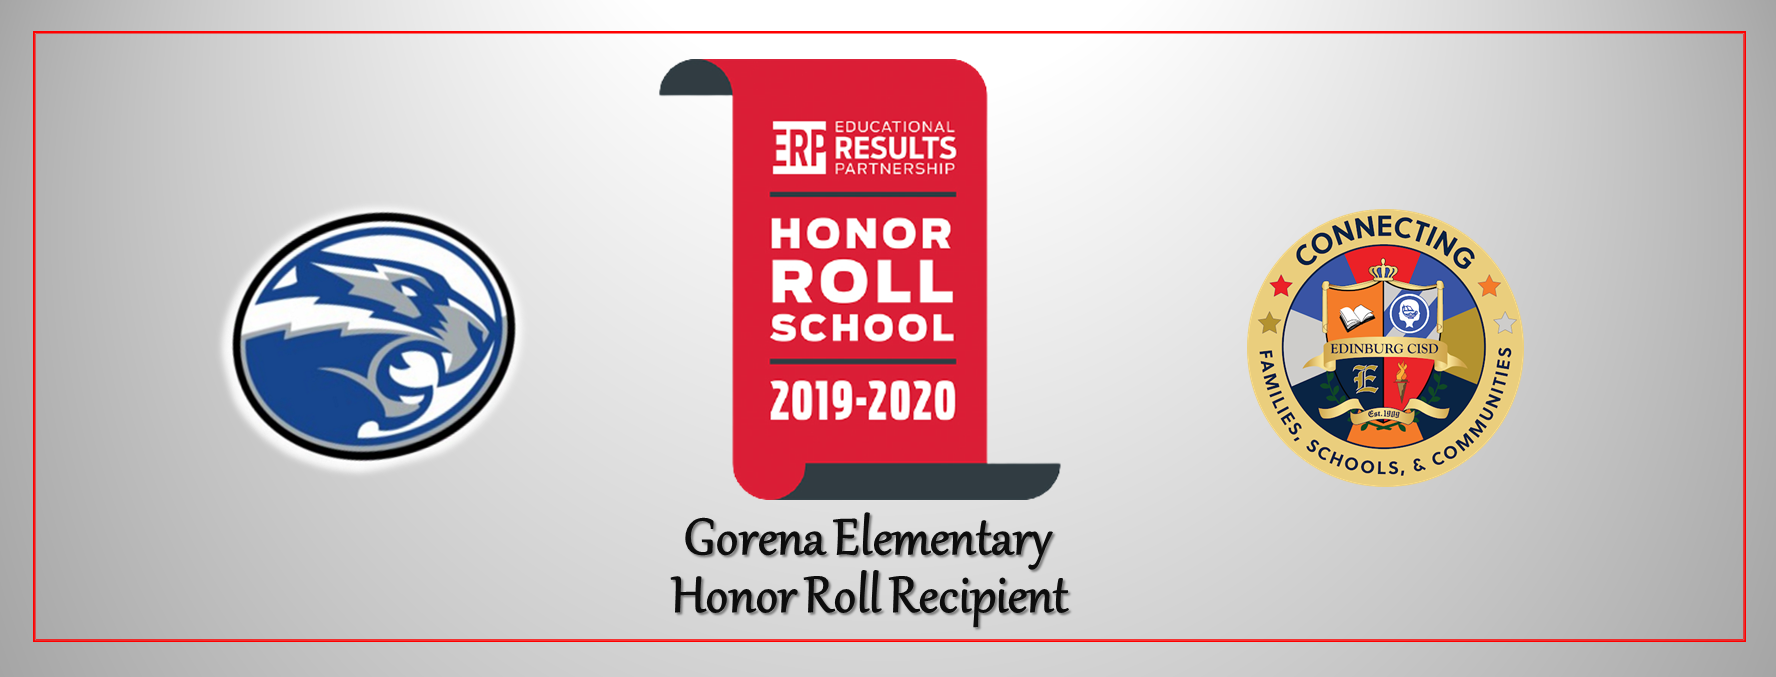 picture of honor roll